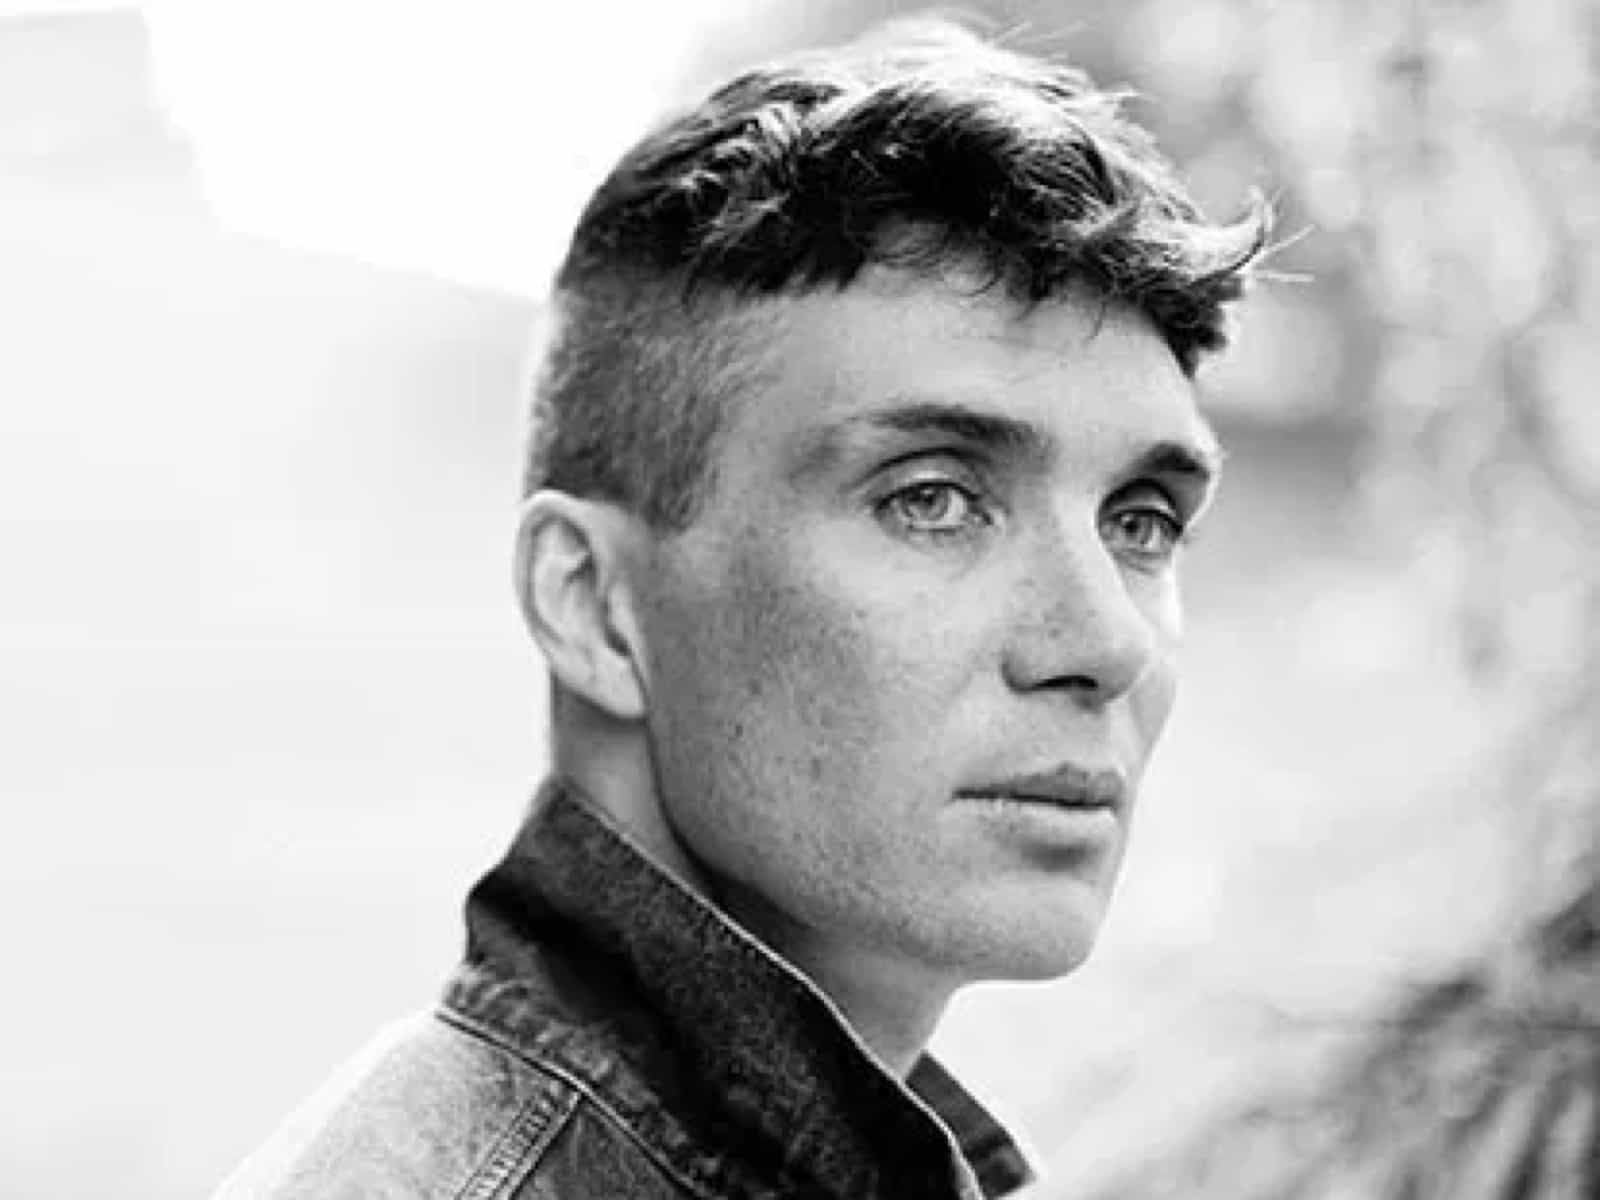 Cillian Murphy Hair - Get The Look with Hades Matte Paste Natural Hair Wax